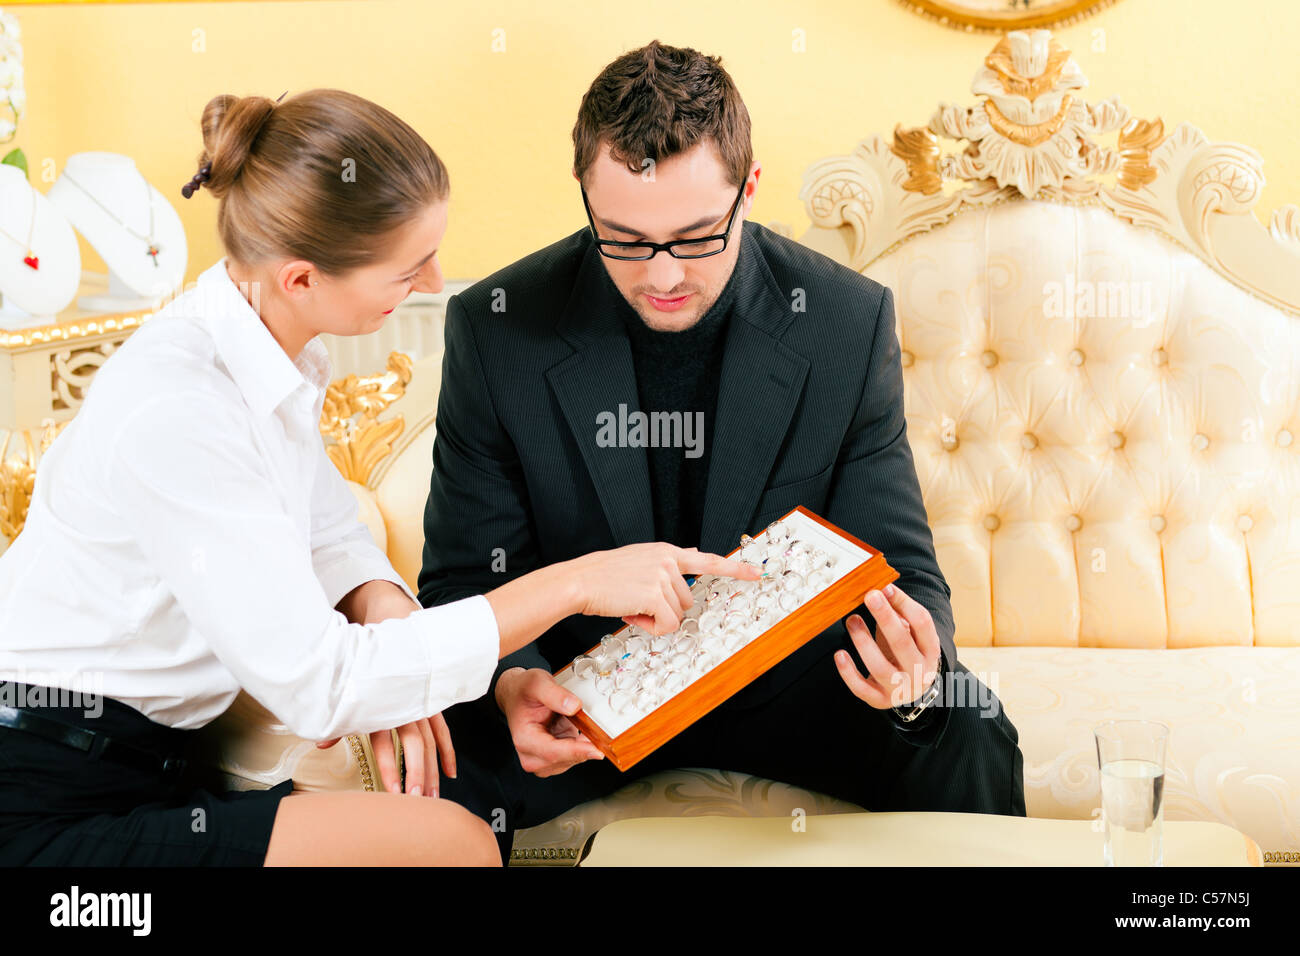 Man choosing a ring at the jeweller and gets consultancy by a shop assistant - Stock Image